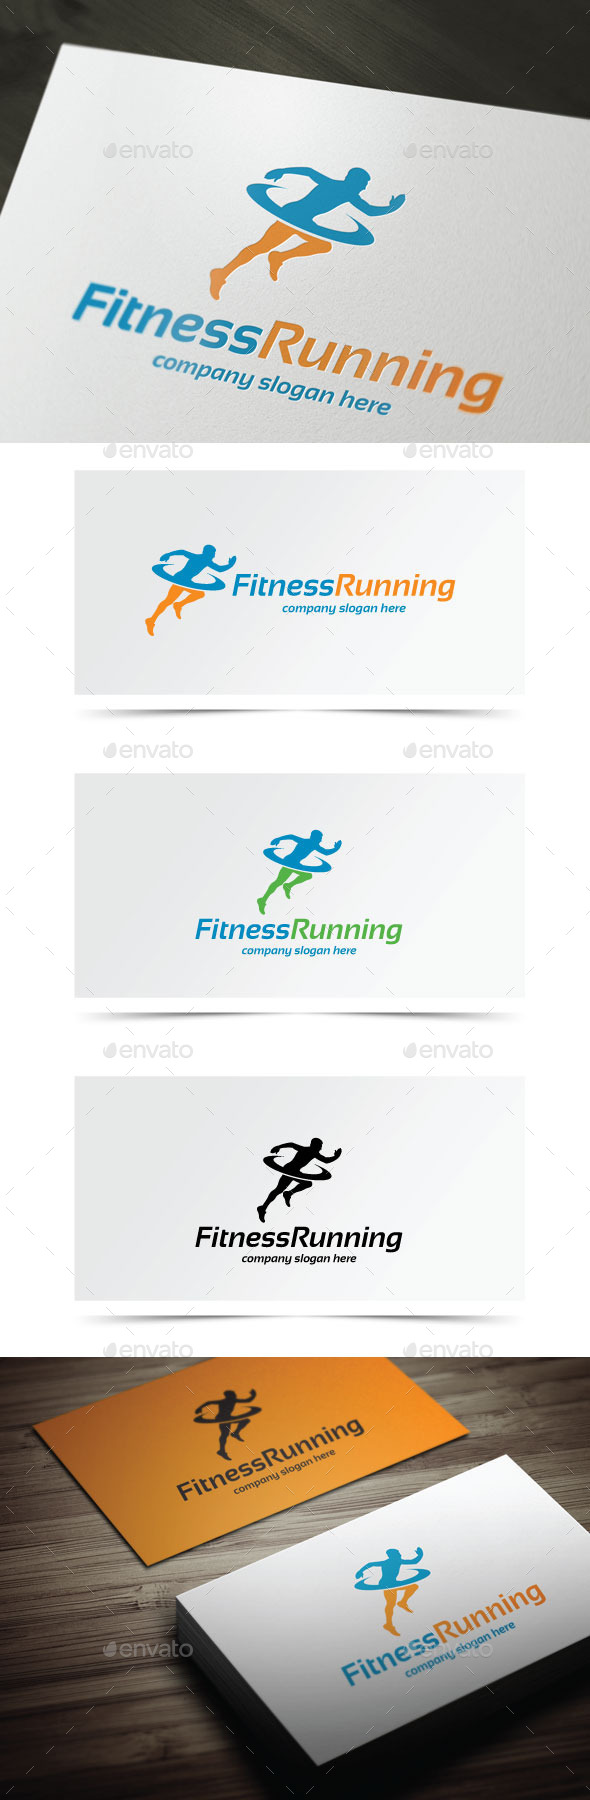 GraphicRiver Fitness Running 10050281